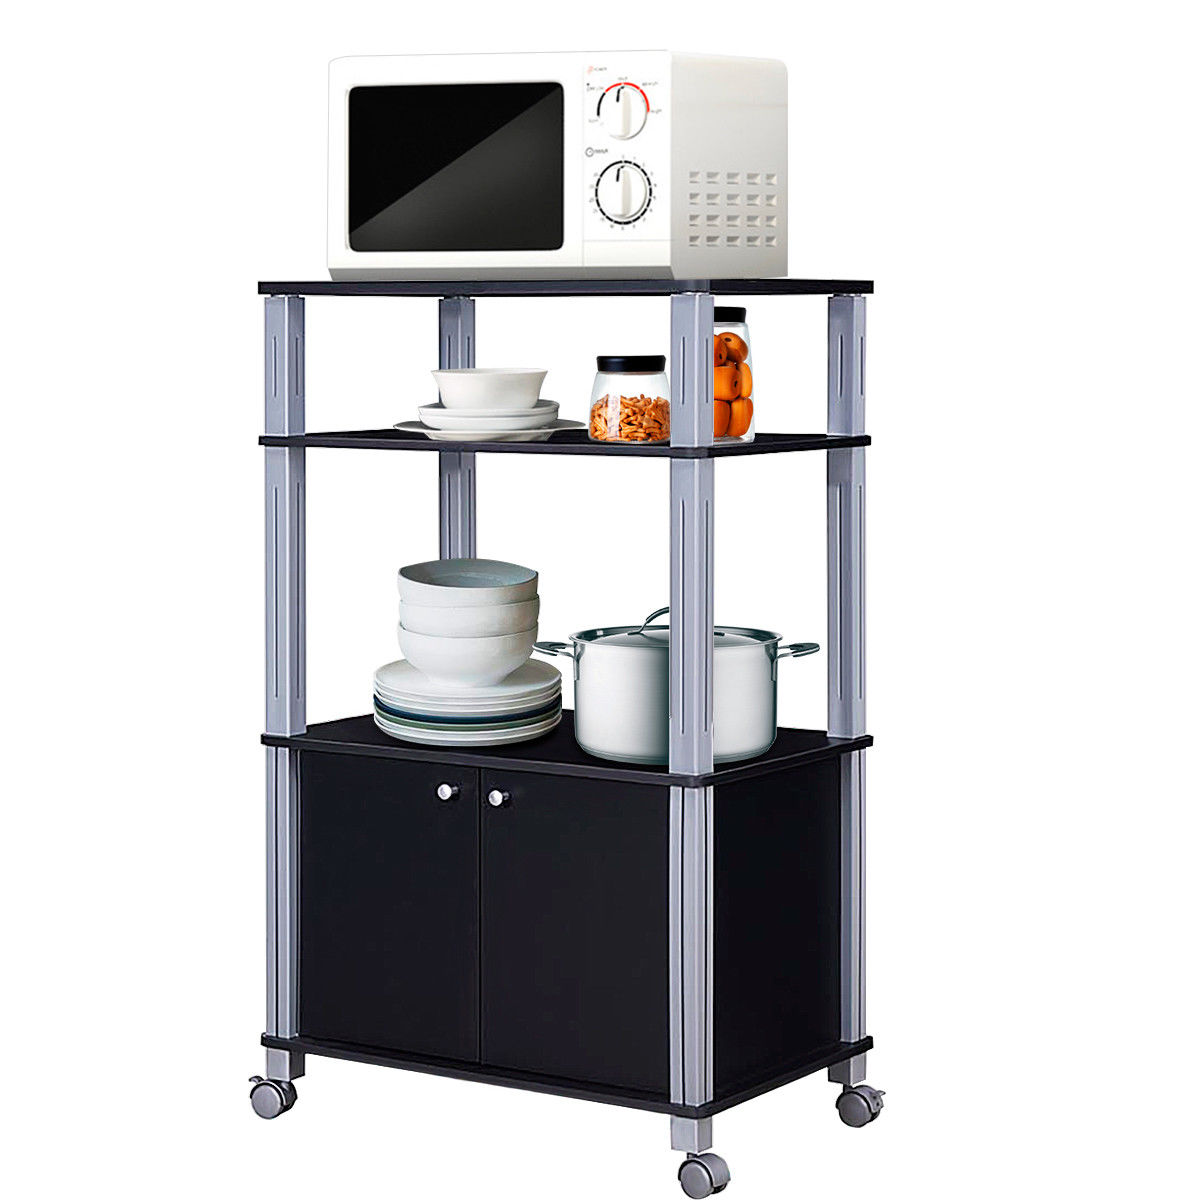 Gymax Bakers Rack Microwave Stand Rolling Storage Cart Multi-functional Display Black